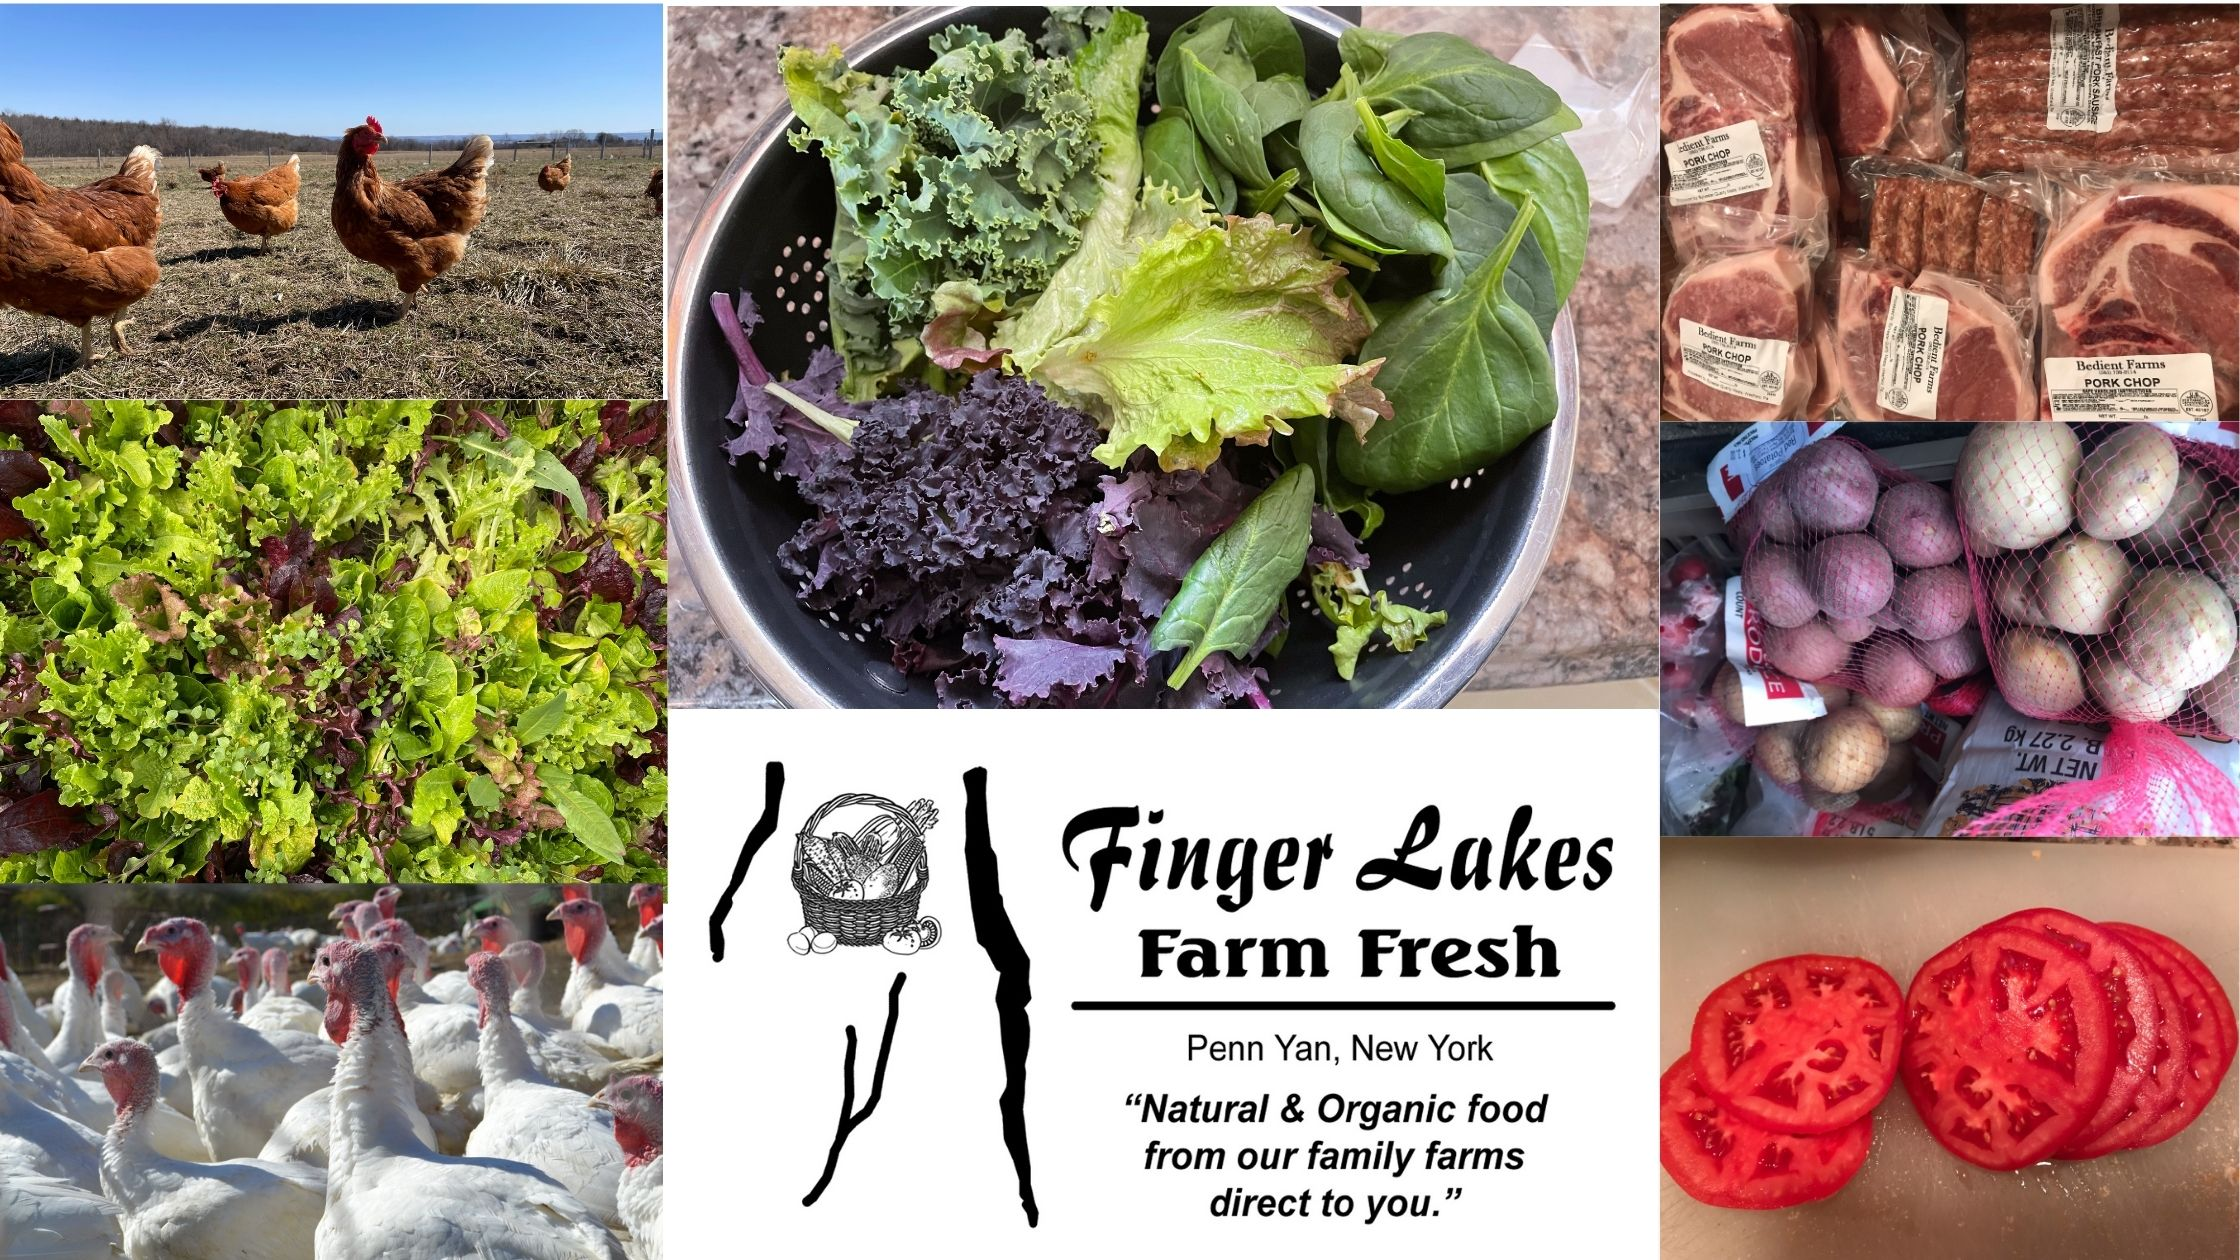 Bedient Farms; Finger Lakes Farm Fresh